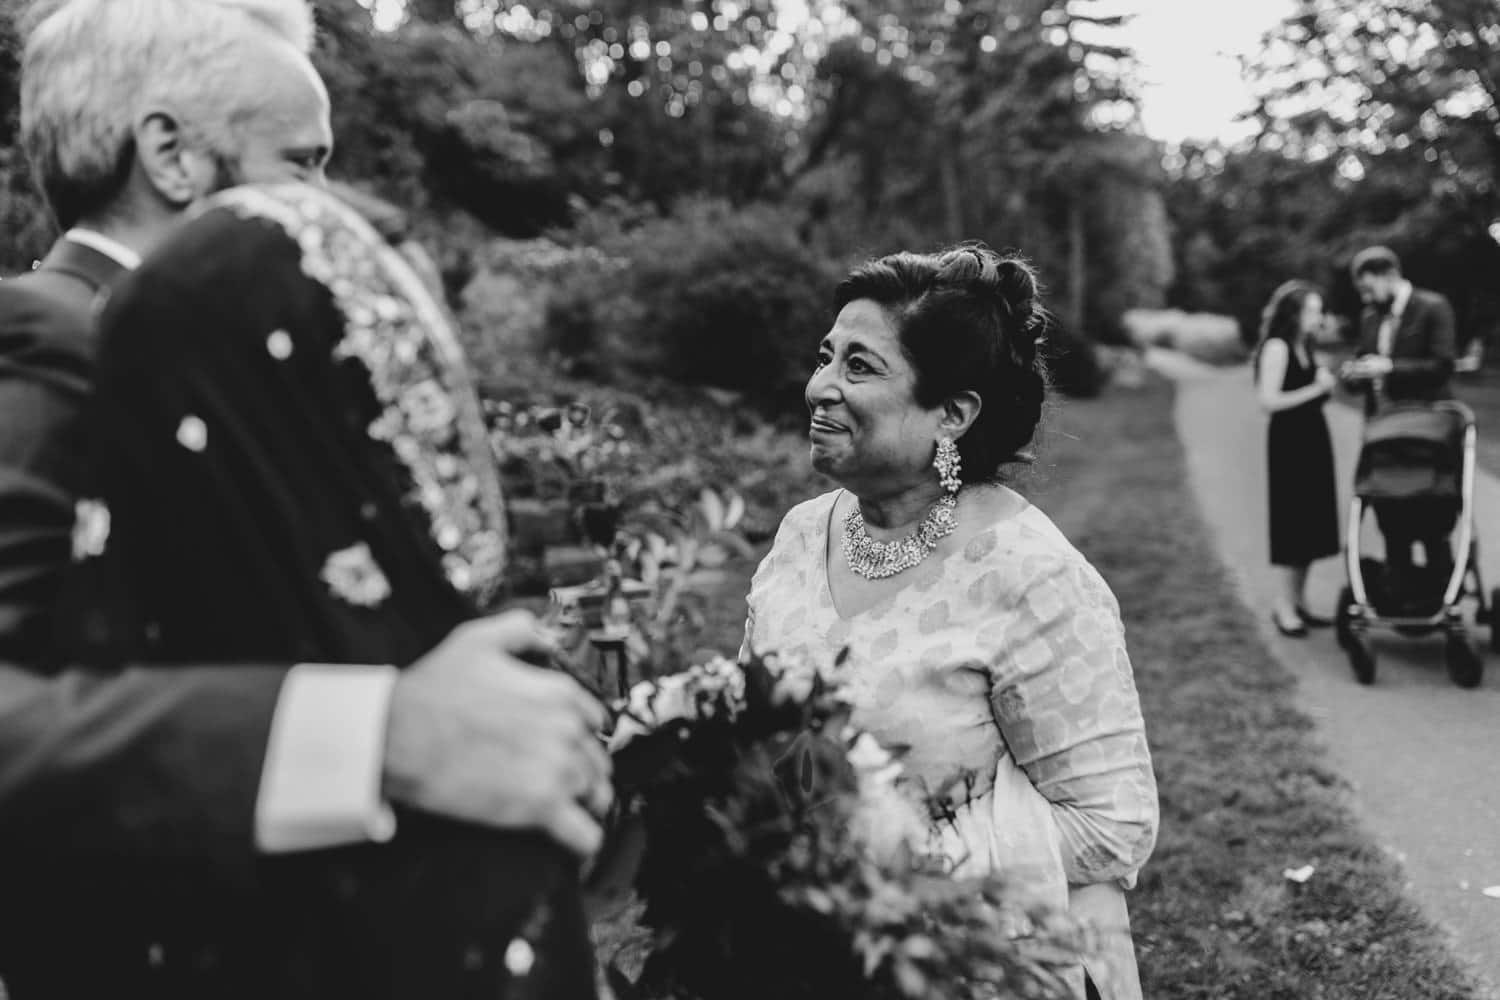 mother of the bride looks lovingly at bride and groom after intimate outdoor ceremony